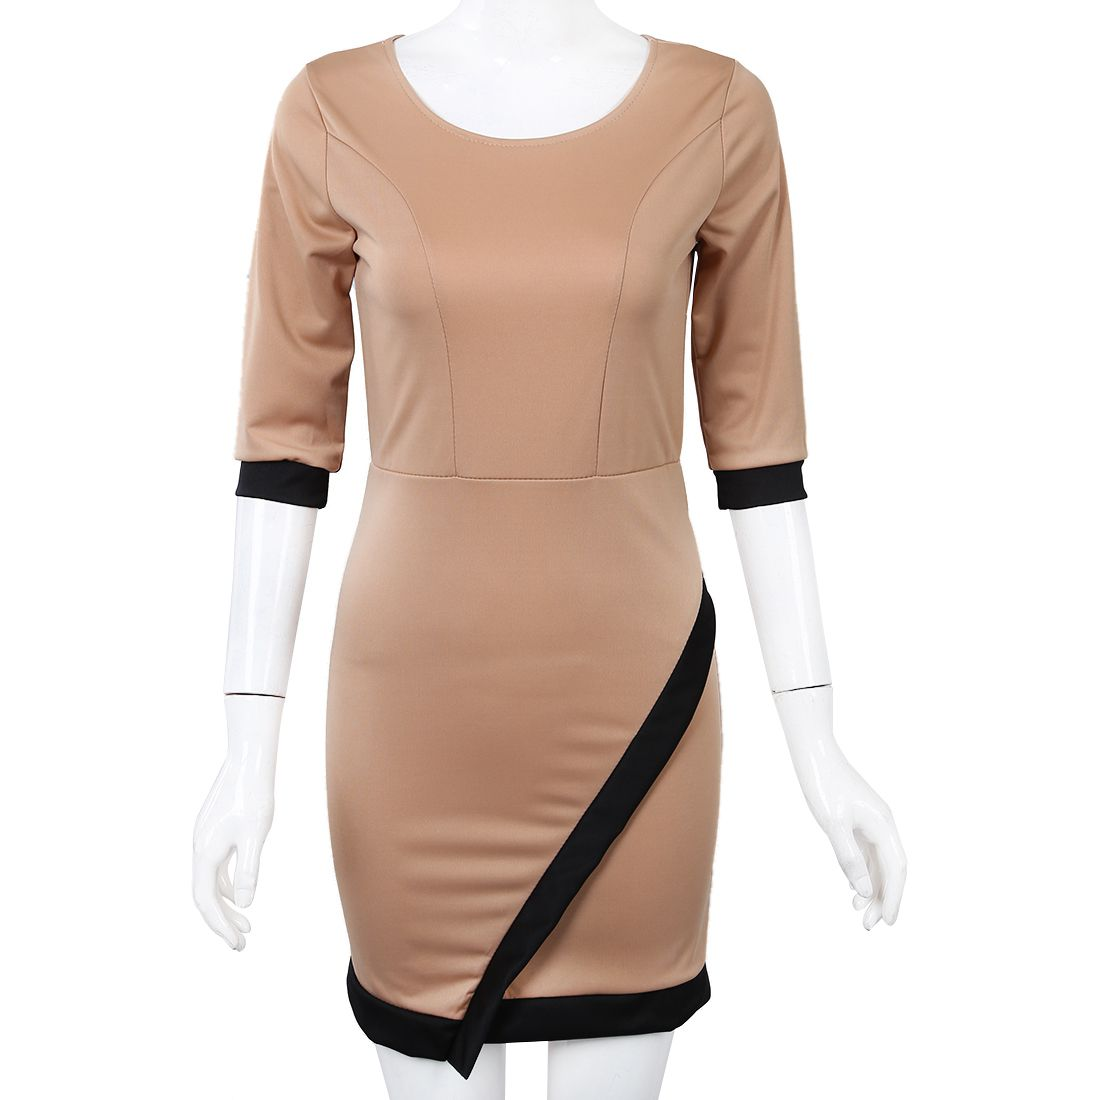 New Fashion Women Casual Mini Dress Summer Knitted Clothing Lady ClubWear Khaki S